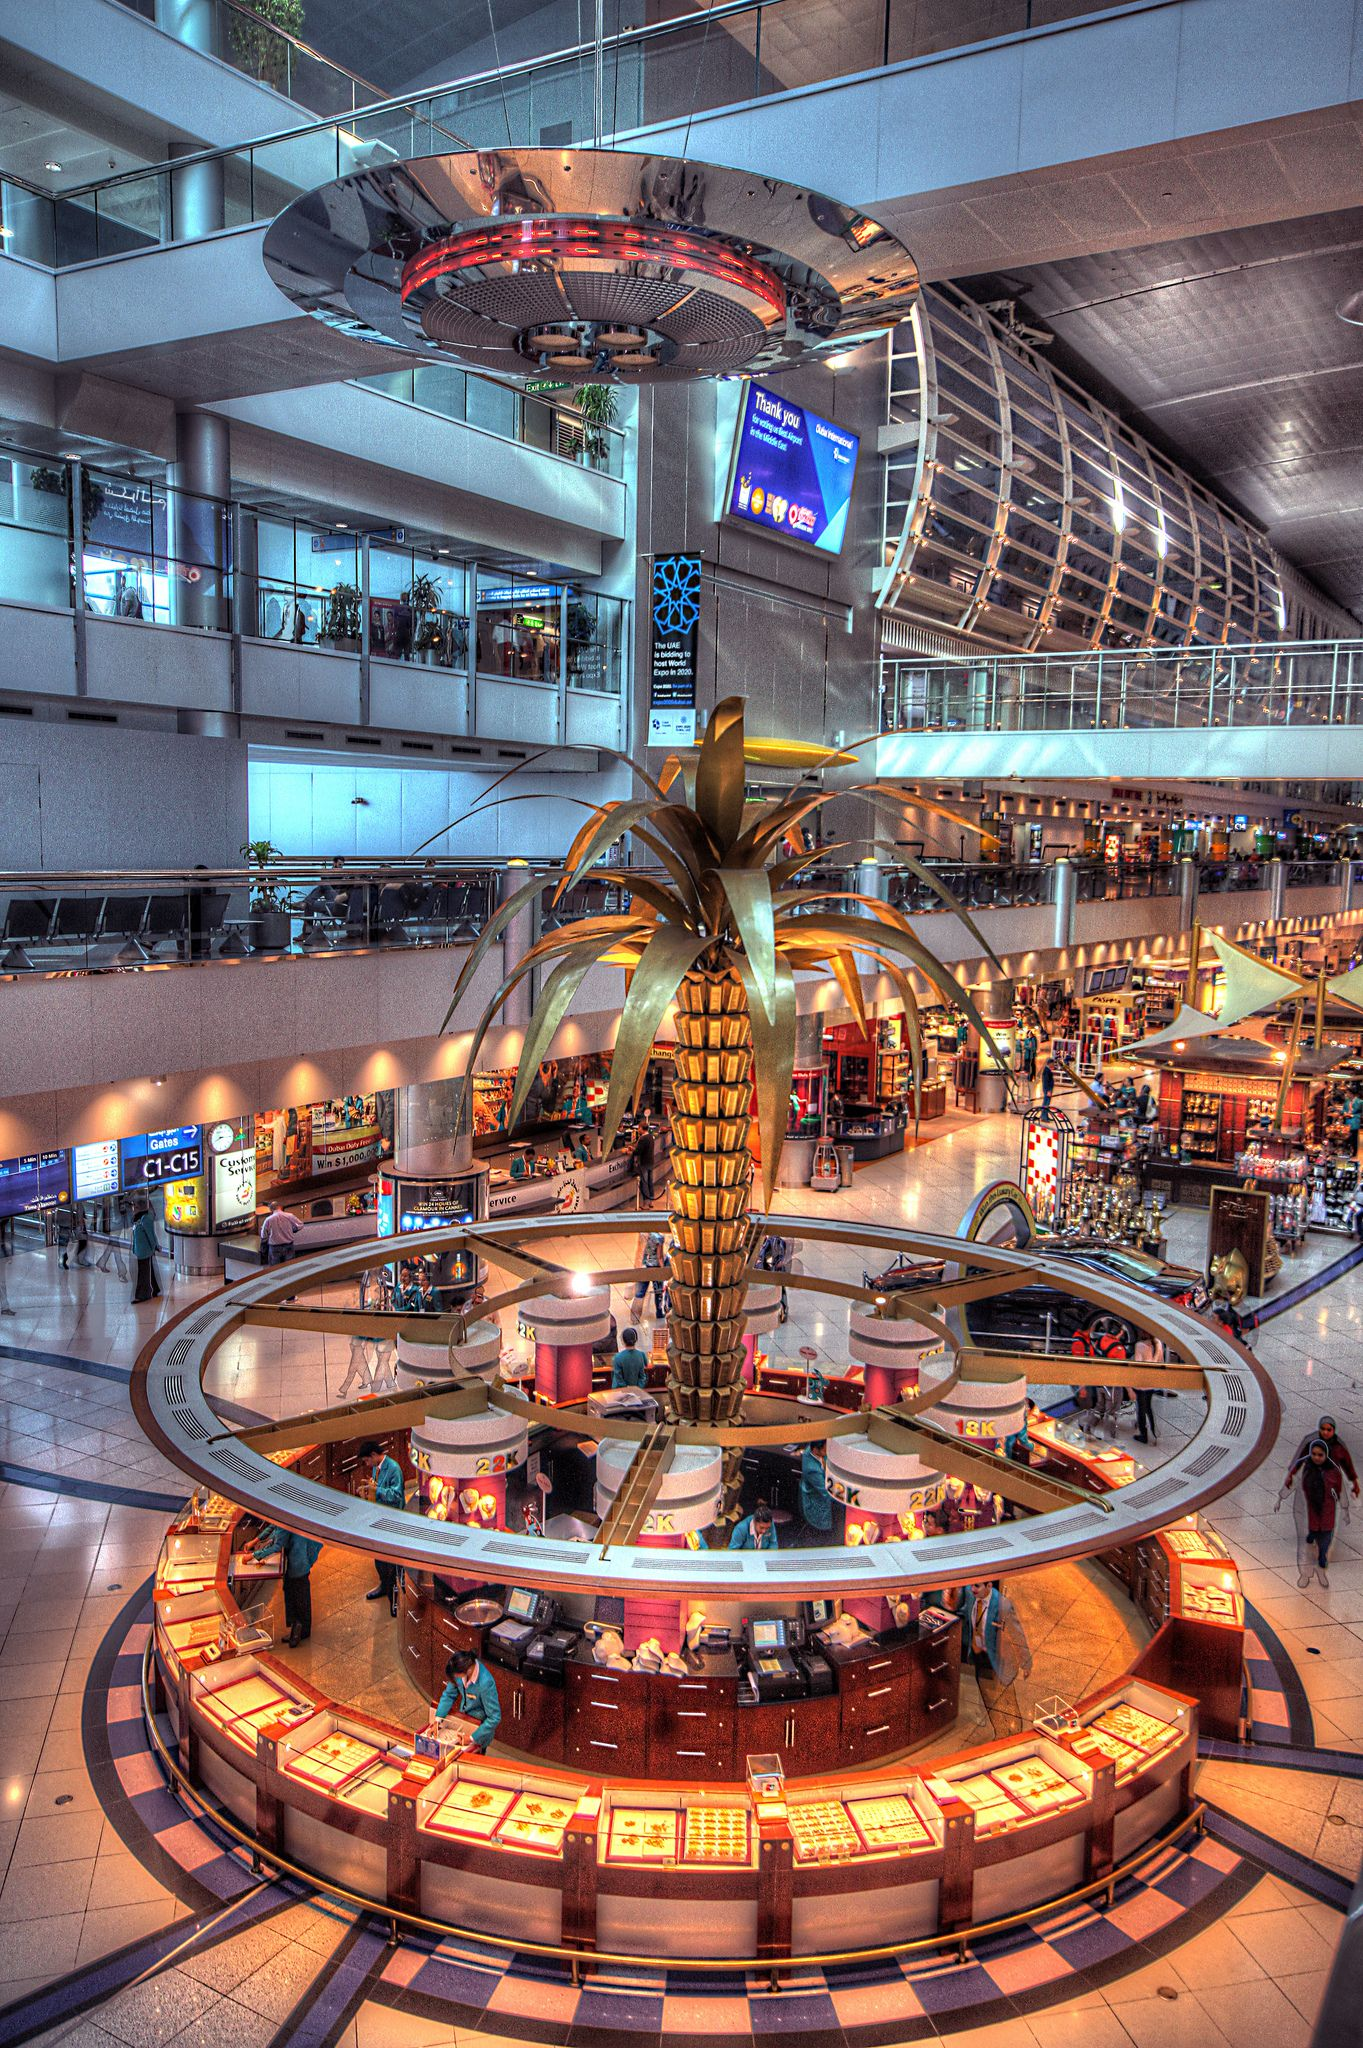 1120a7f1d1a35b43f3ce619de0cd42d0 - How To Get From Dubai Airport To The Palm